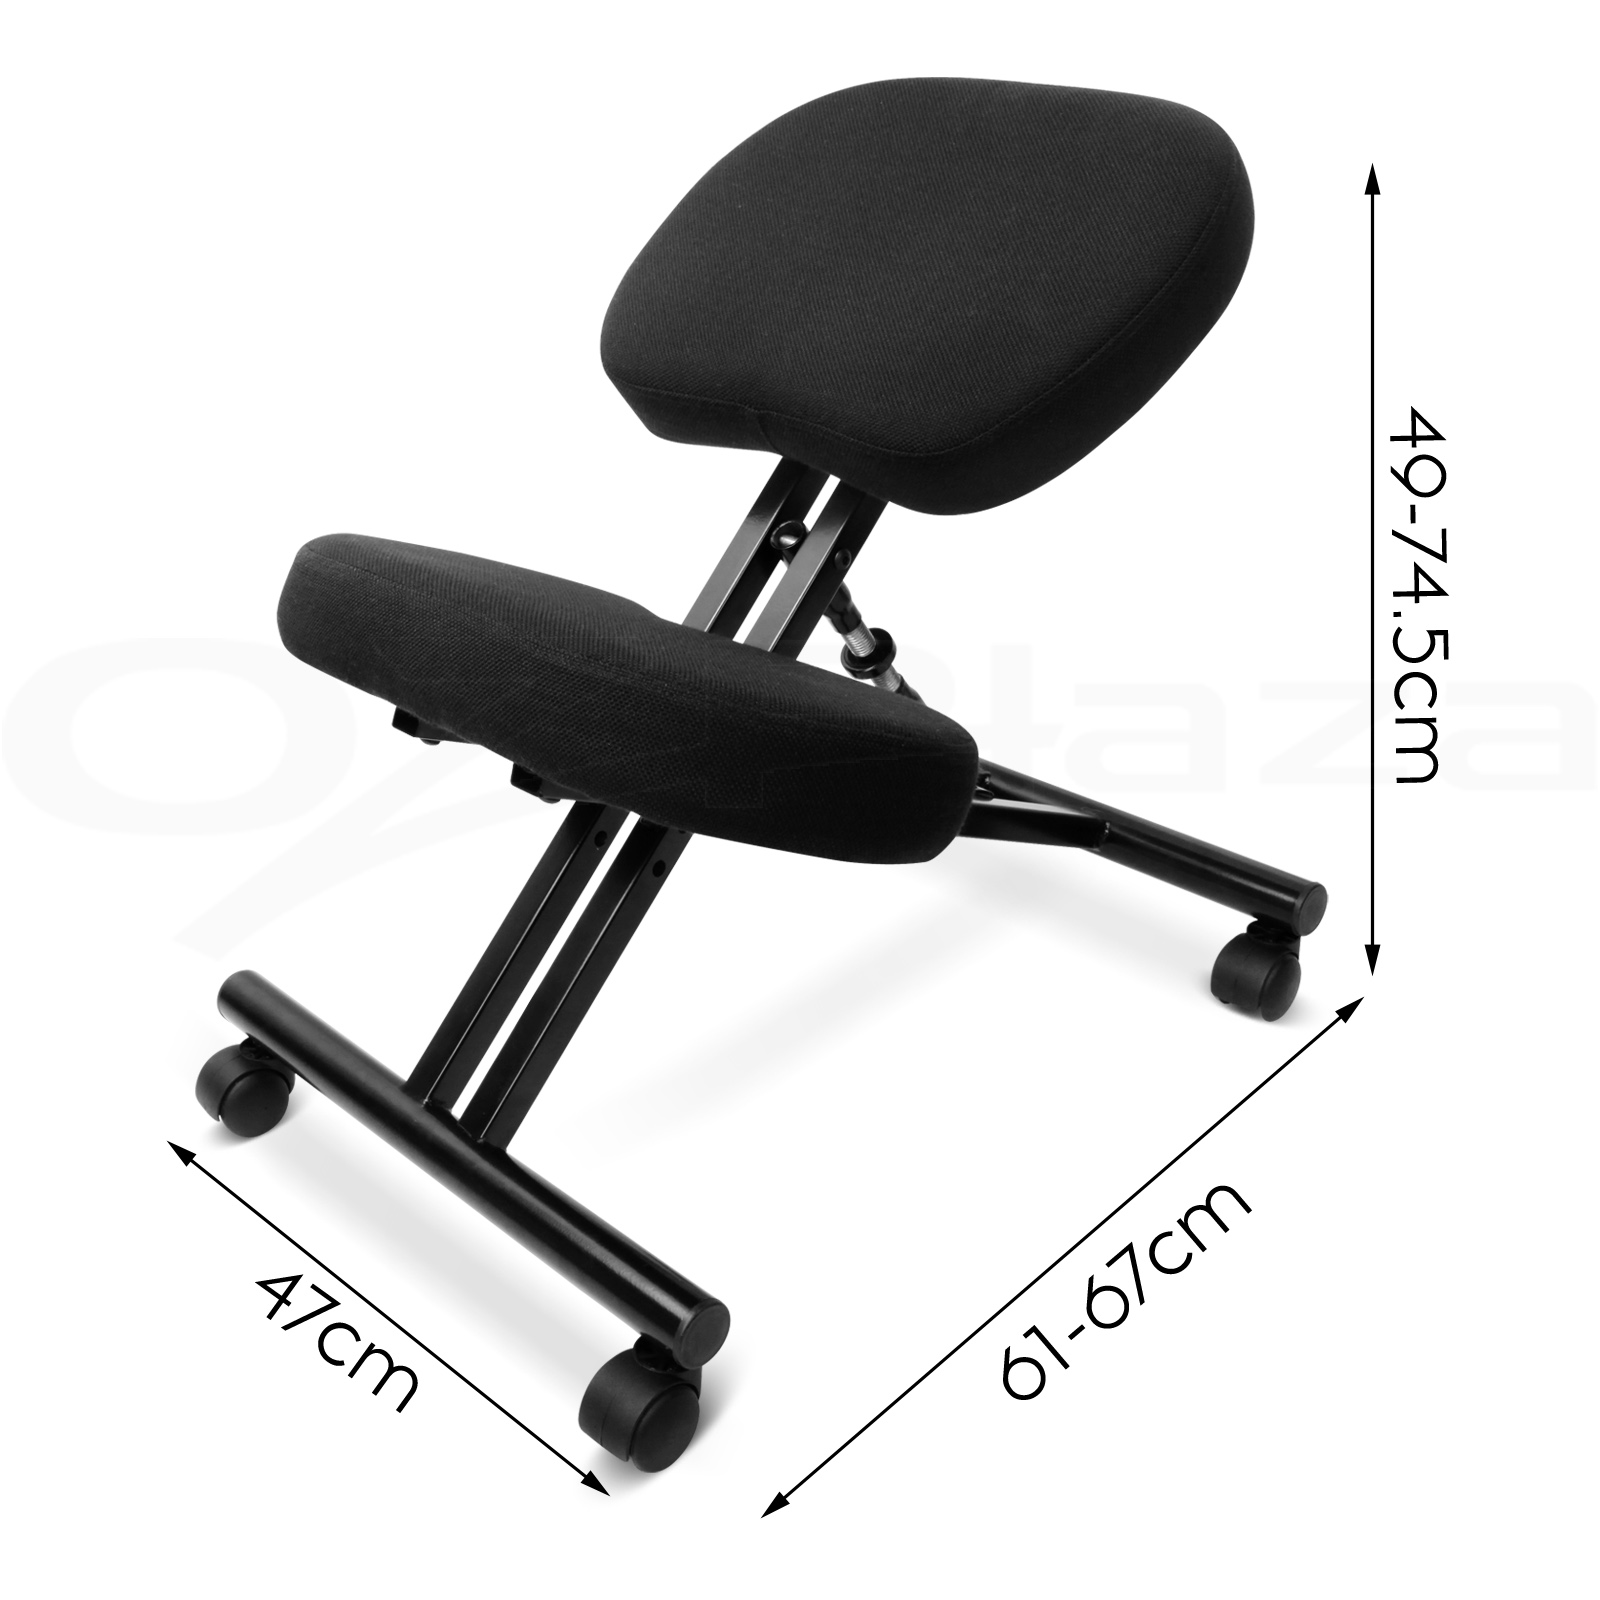 Posture Kneeling Chair adjustable kneeling chair office stool stretch knee yoga posture